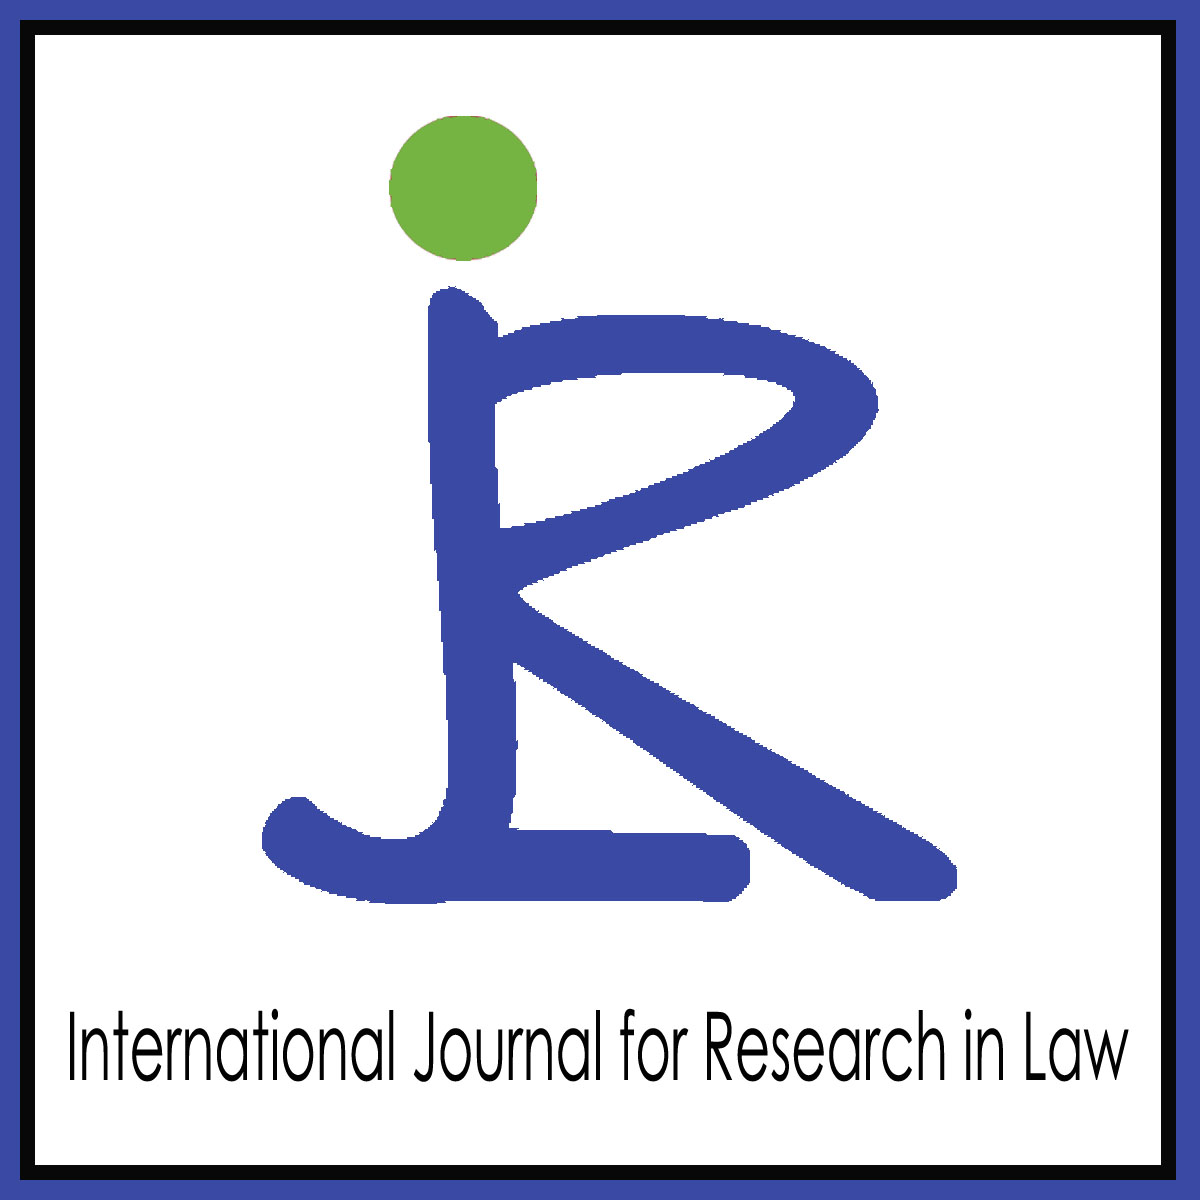 Call for Papers: International Journal for Research in Law [Vol 2 Issue 2]: Submit by April 30